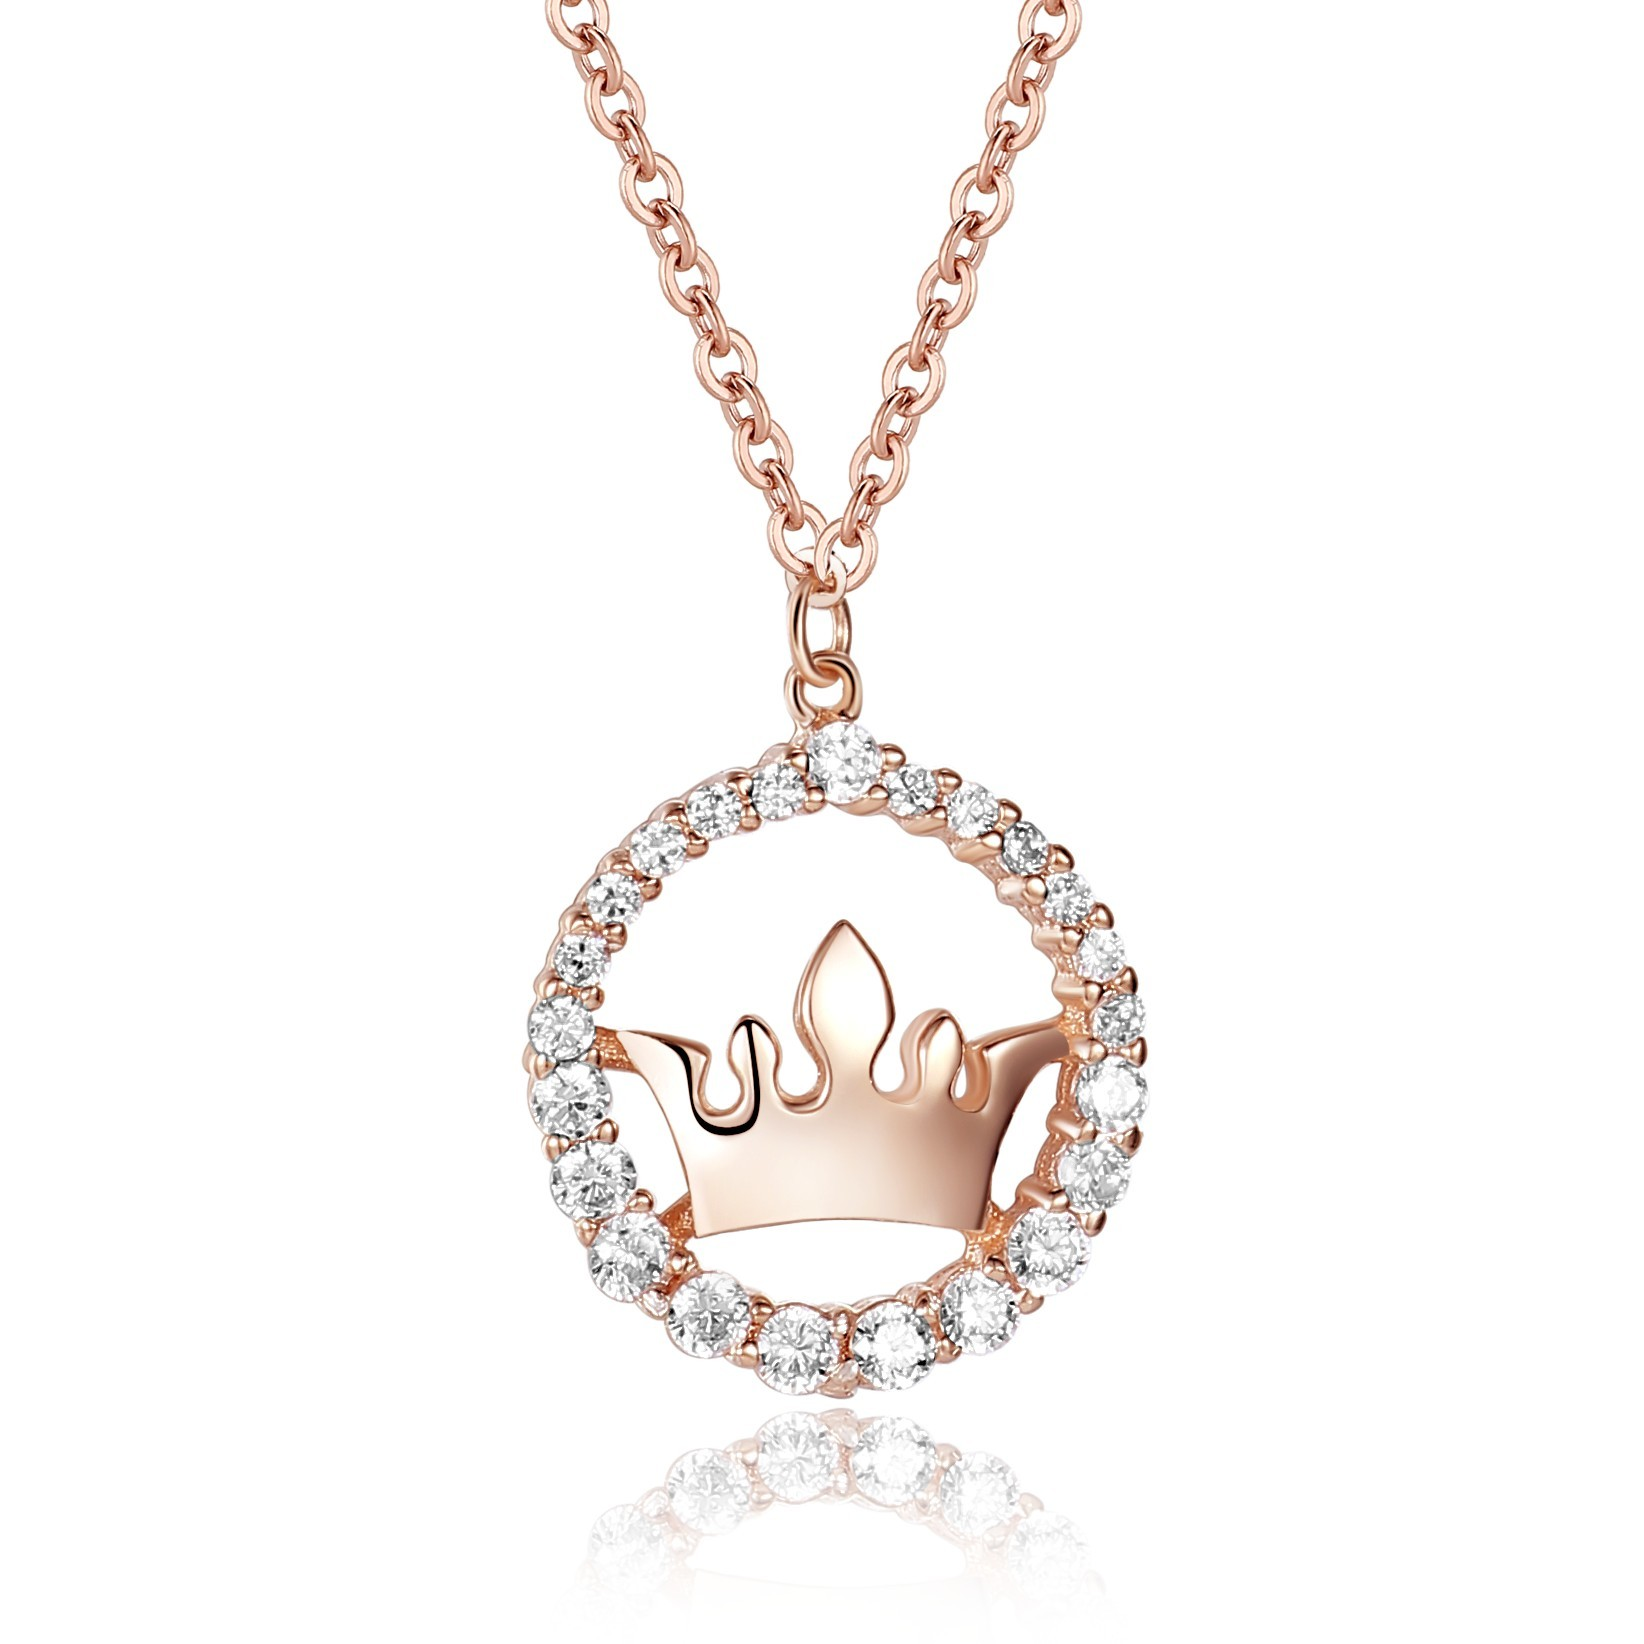 pendant library crown diamond foundation necklace washington london collection port pave